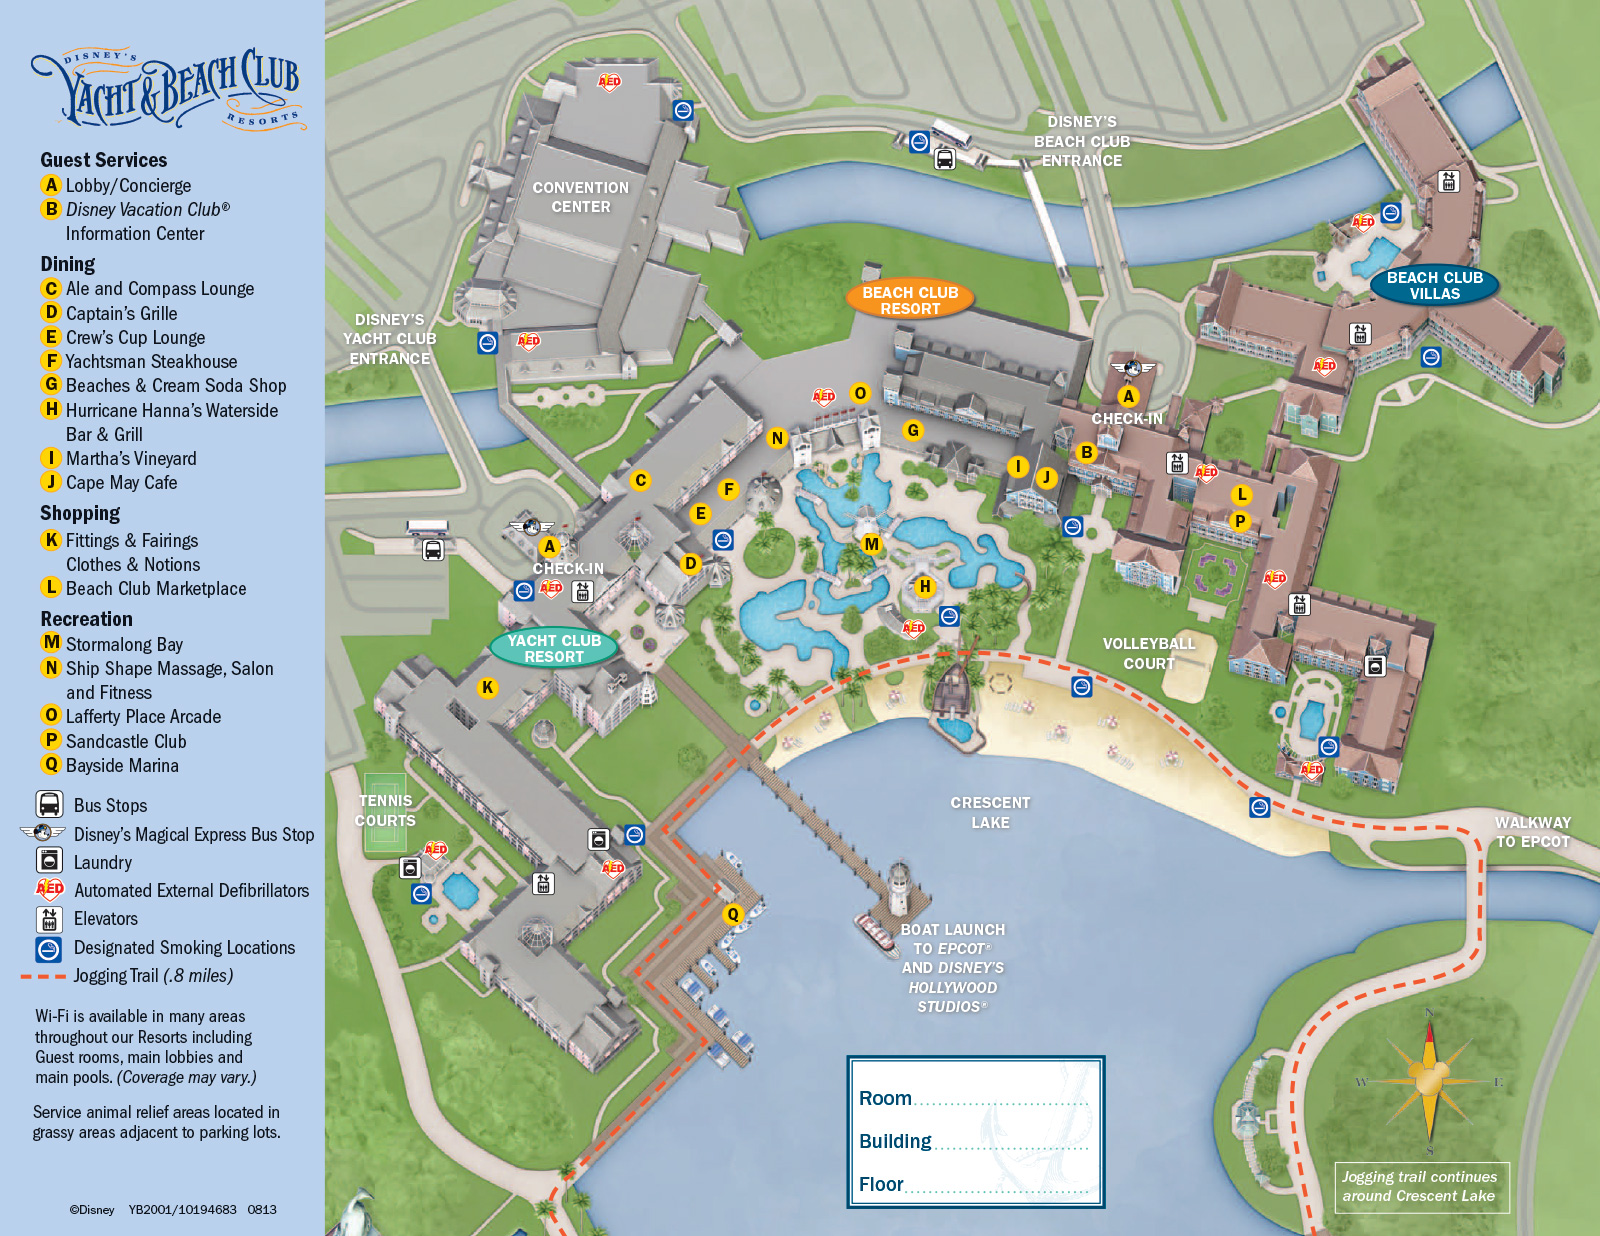 2013 Beach Club Villas guide map